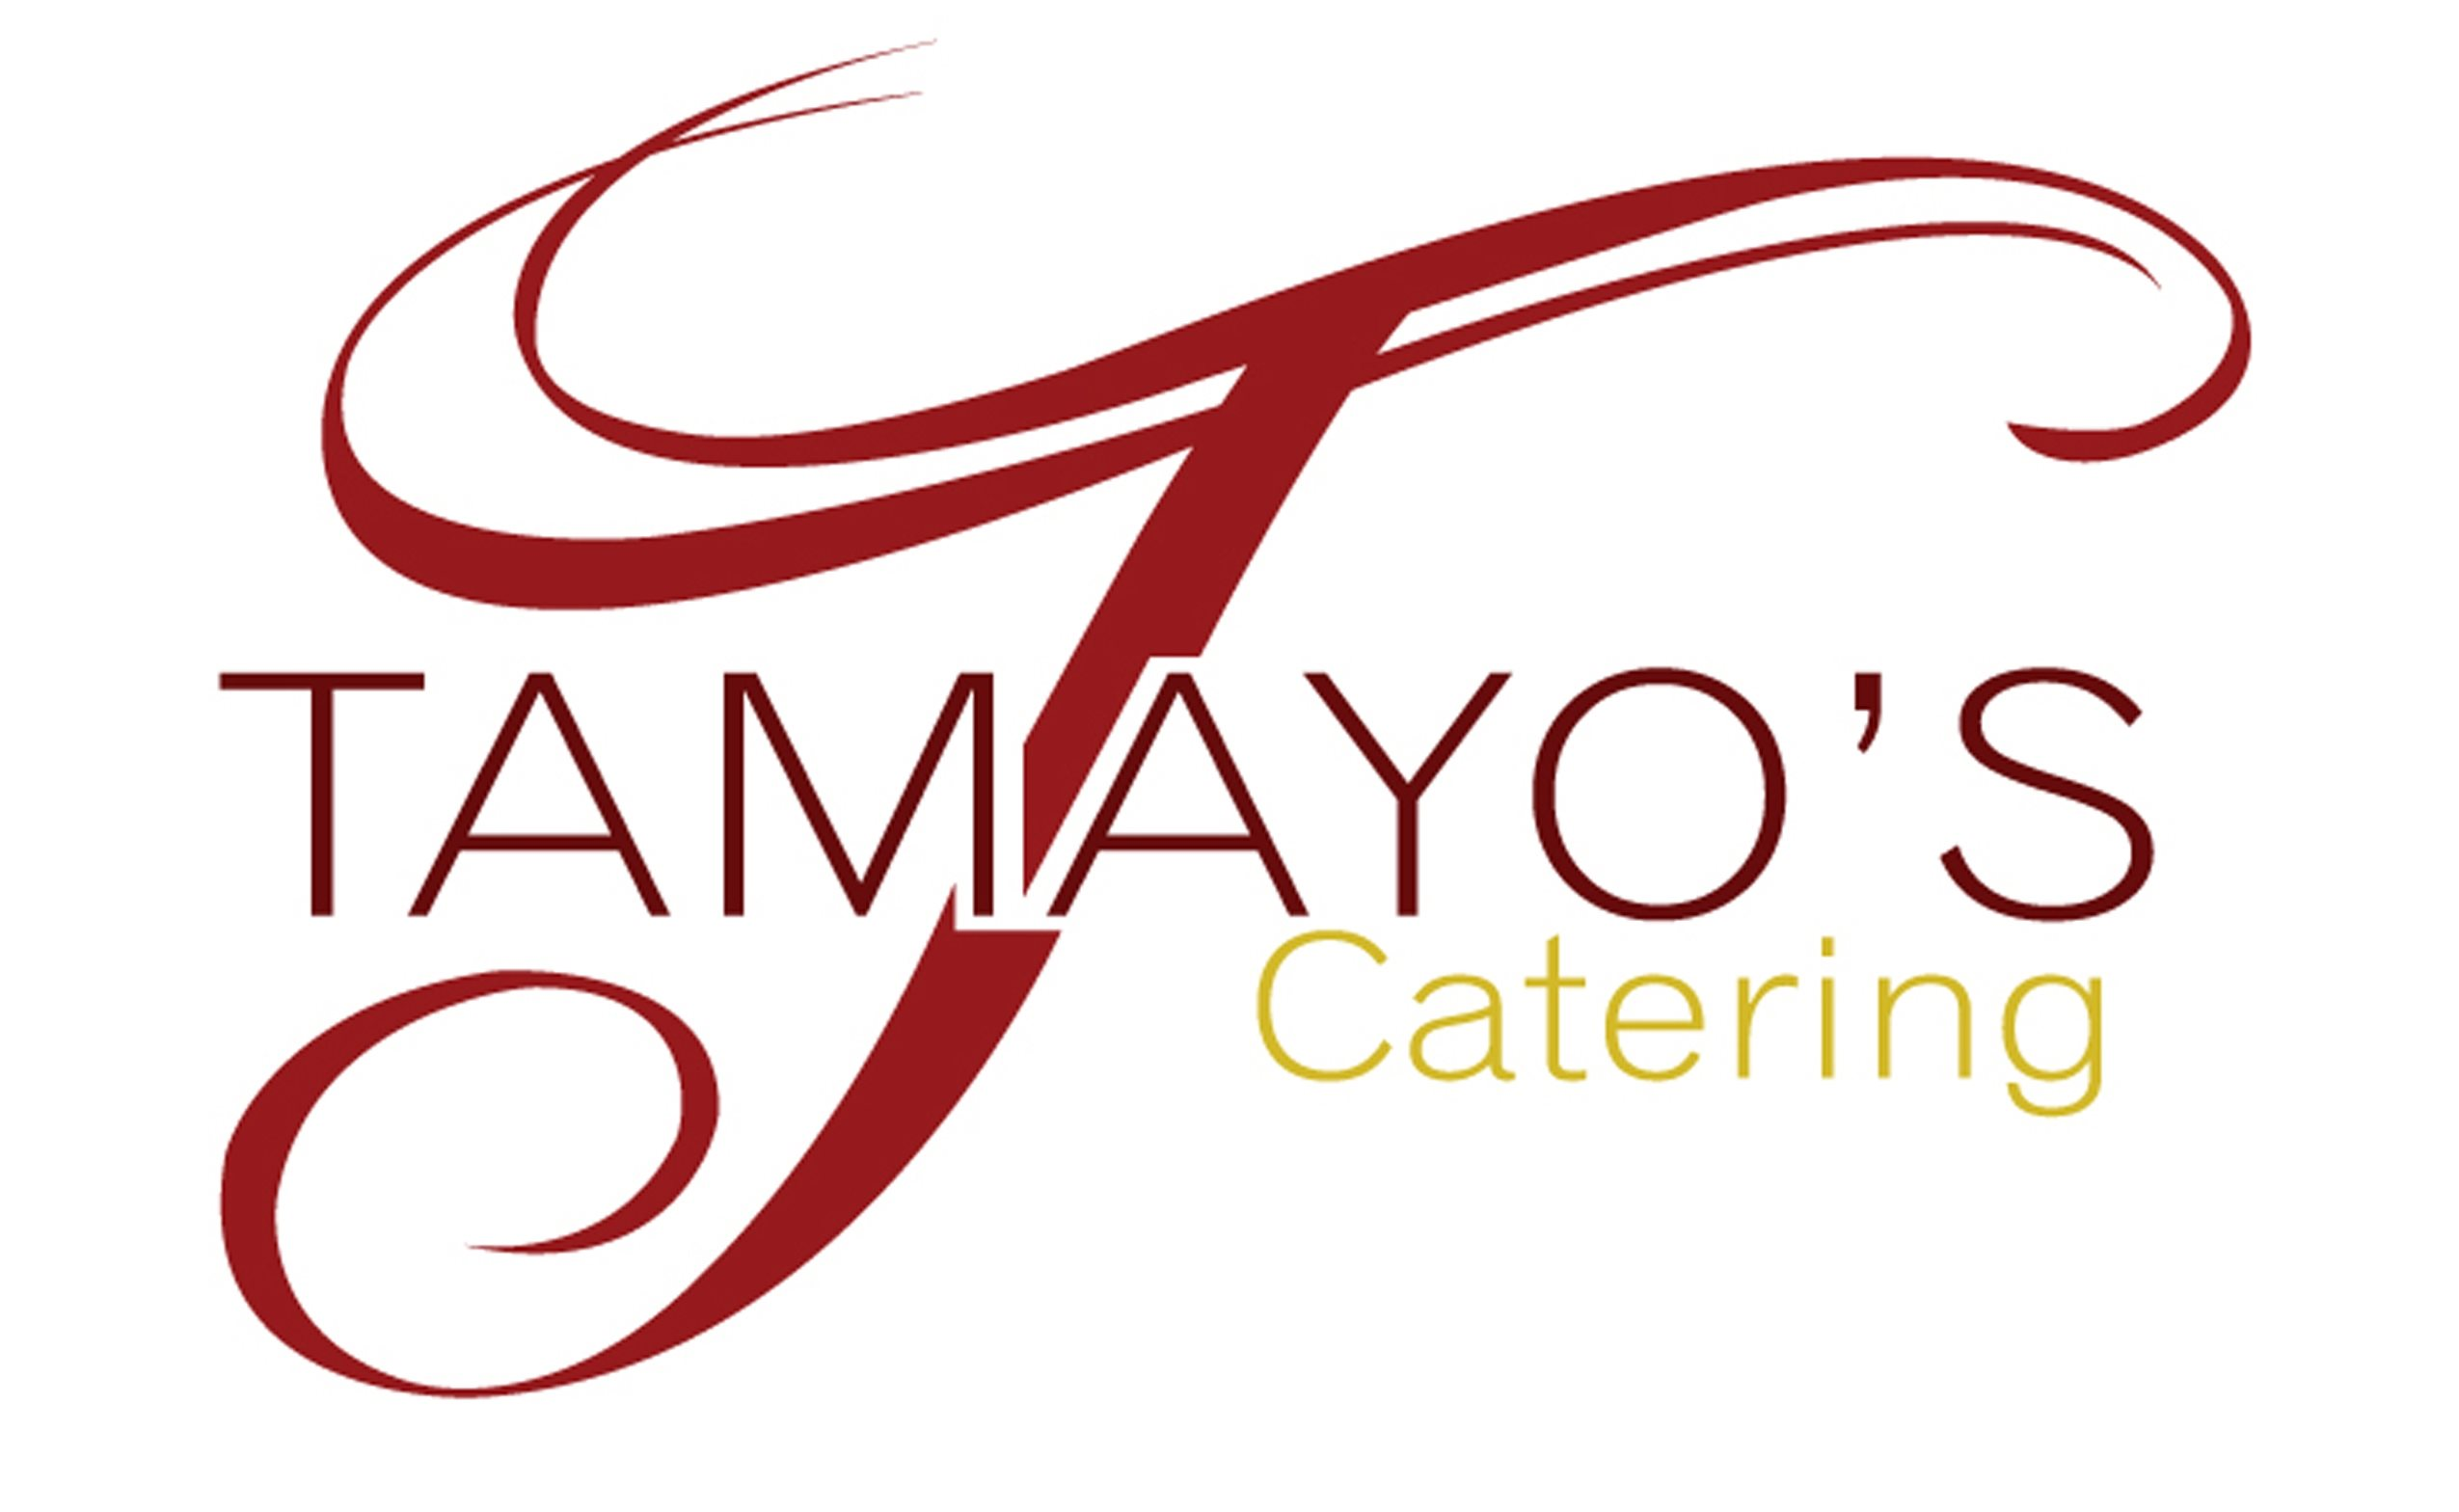 Tamayo's Catering Services